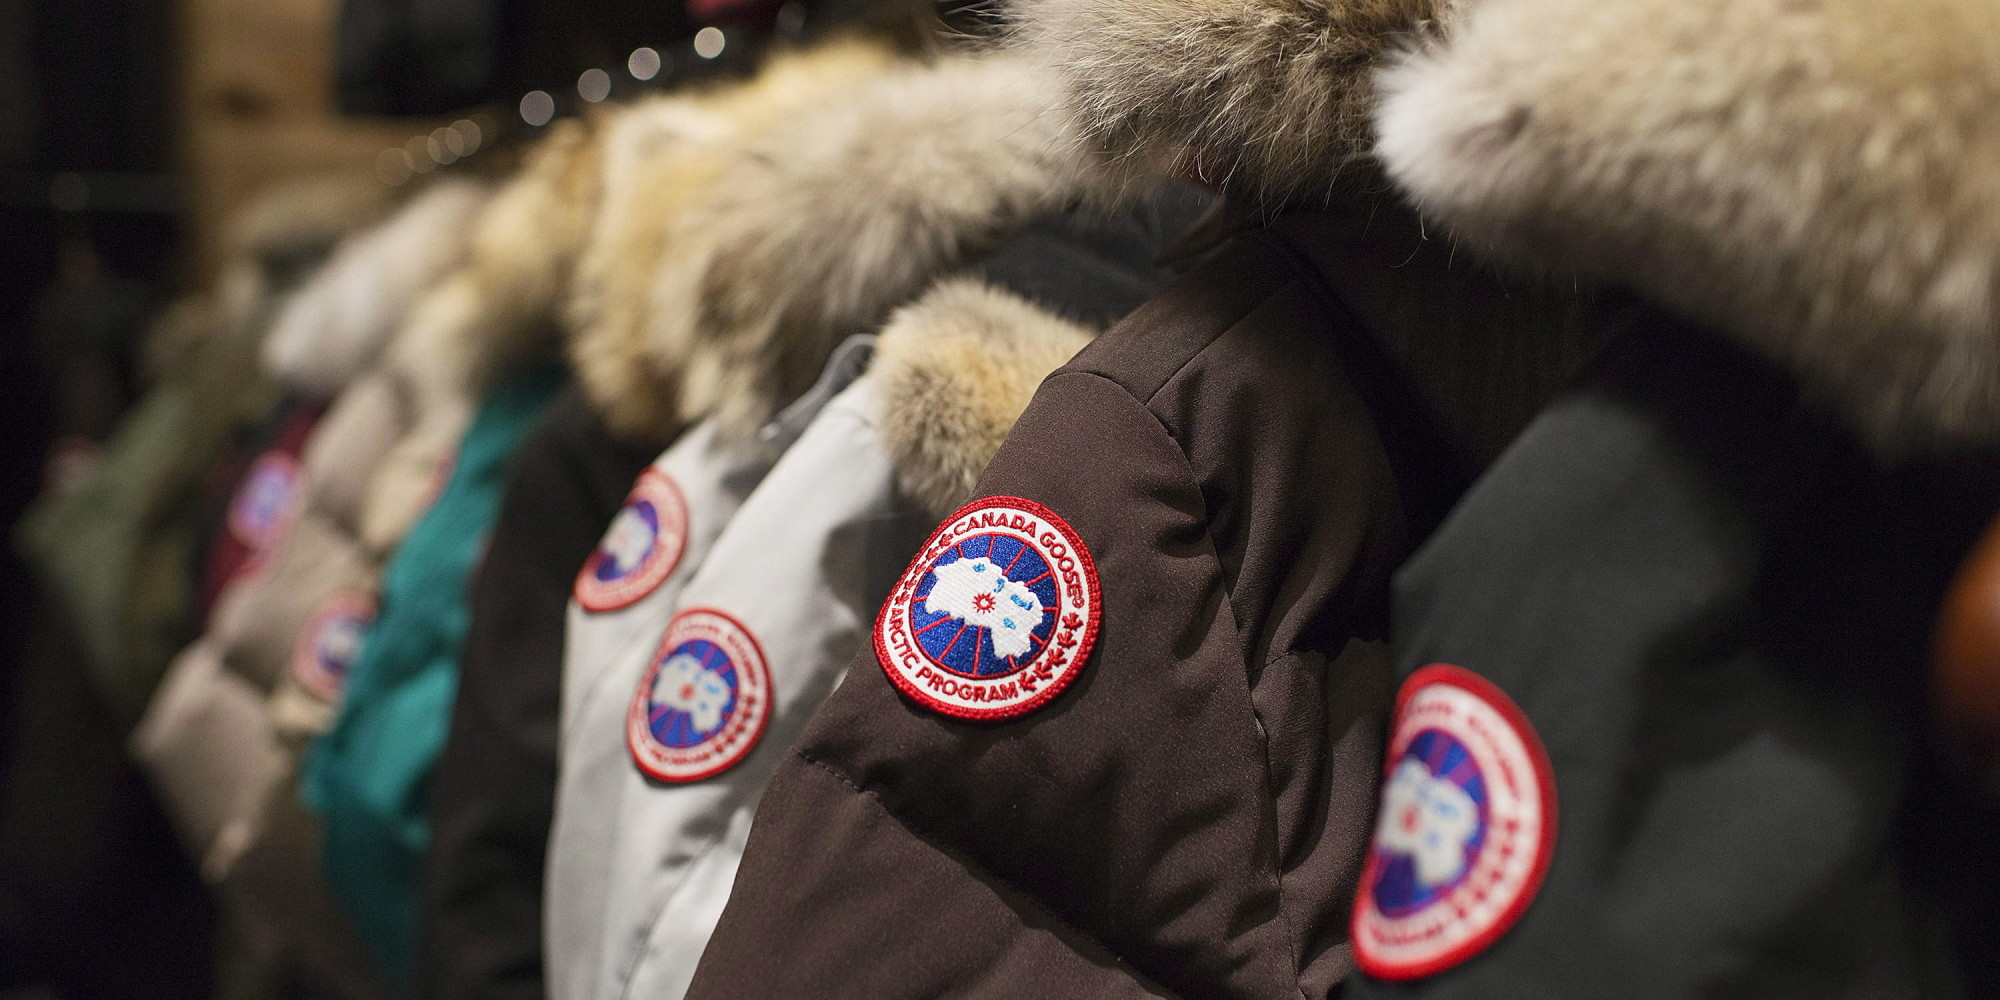 Canada Goose vest online cheap - Sears: Canada Goose Engaged In 'Bullying'